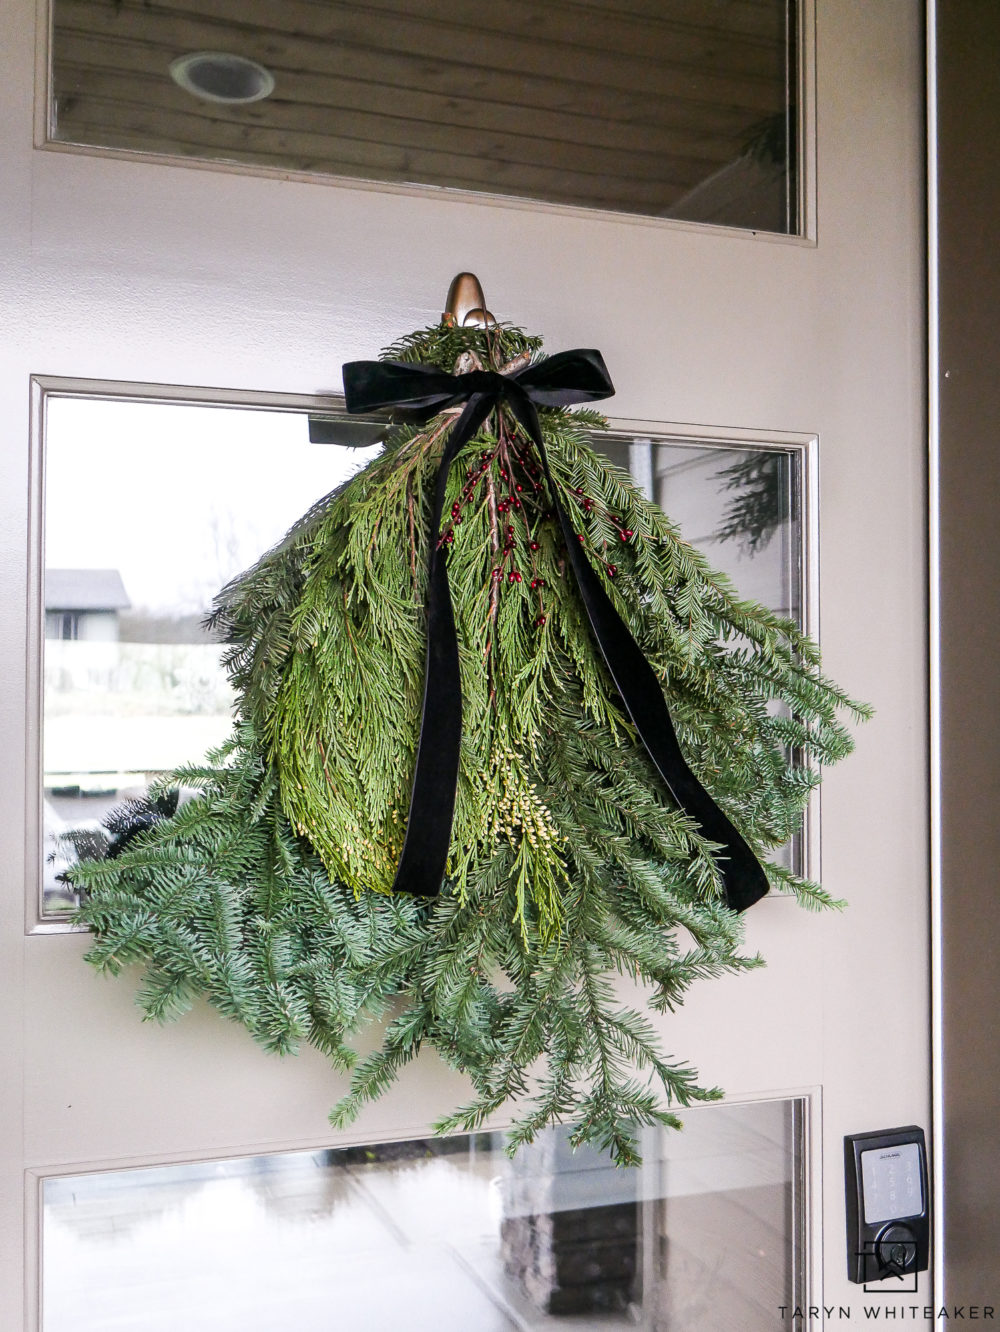 Create your own modern Christmas wreath using a bushel of fresh greens tied up with a simple ribbon.